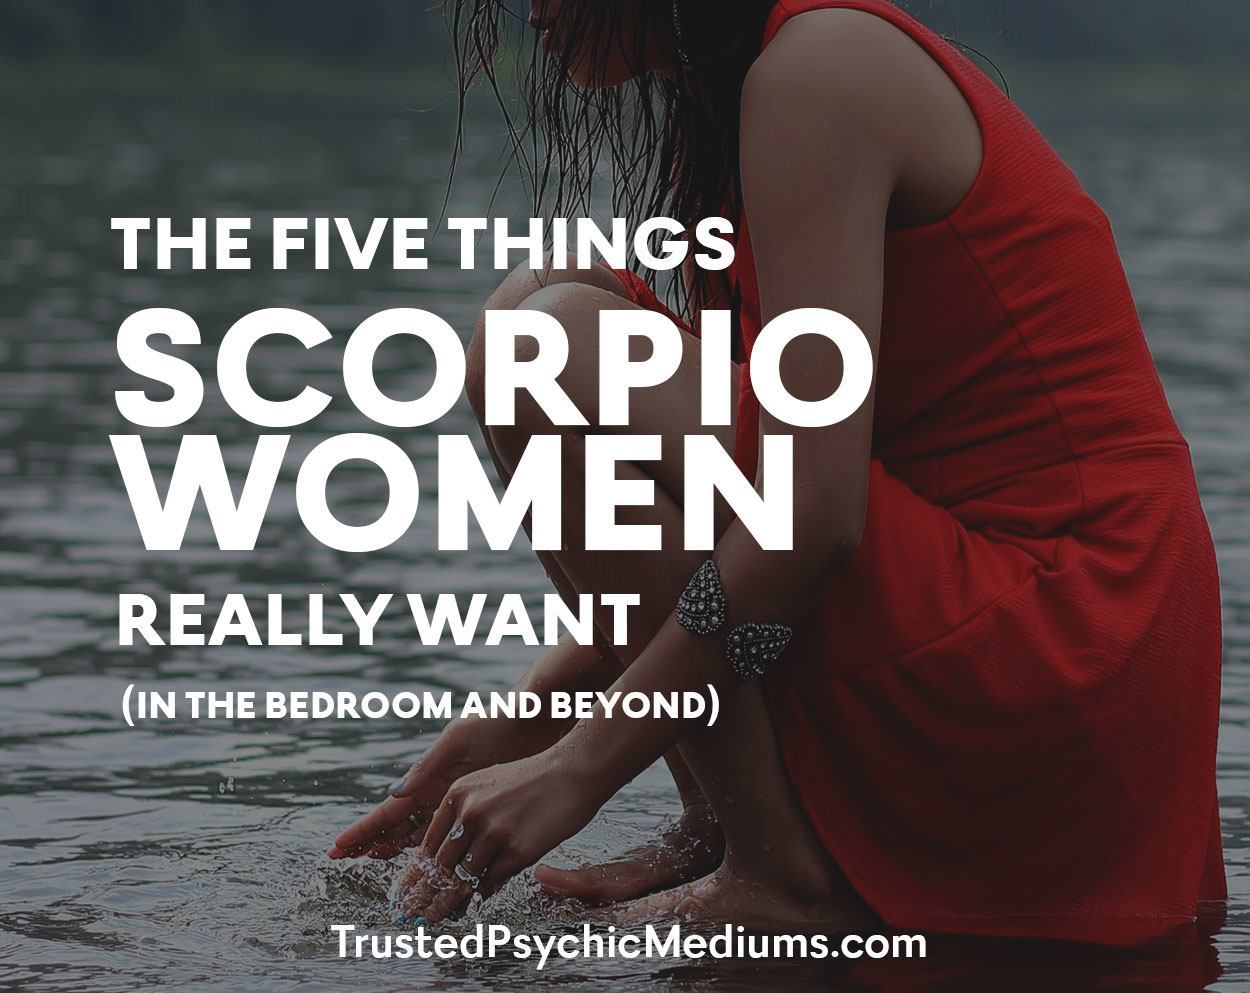 The Five Things Scorpio Women Really Want (in the Bedroom and Beyond)